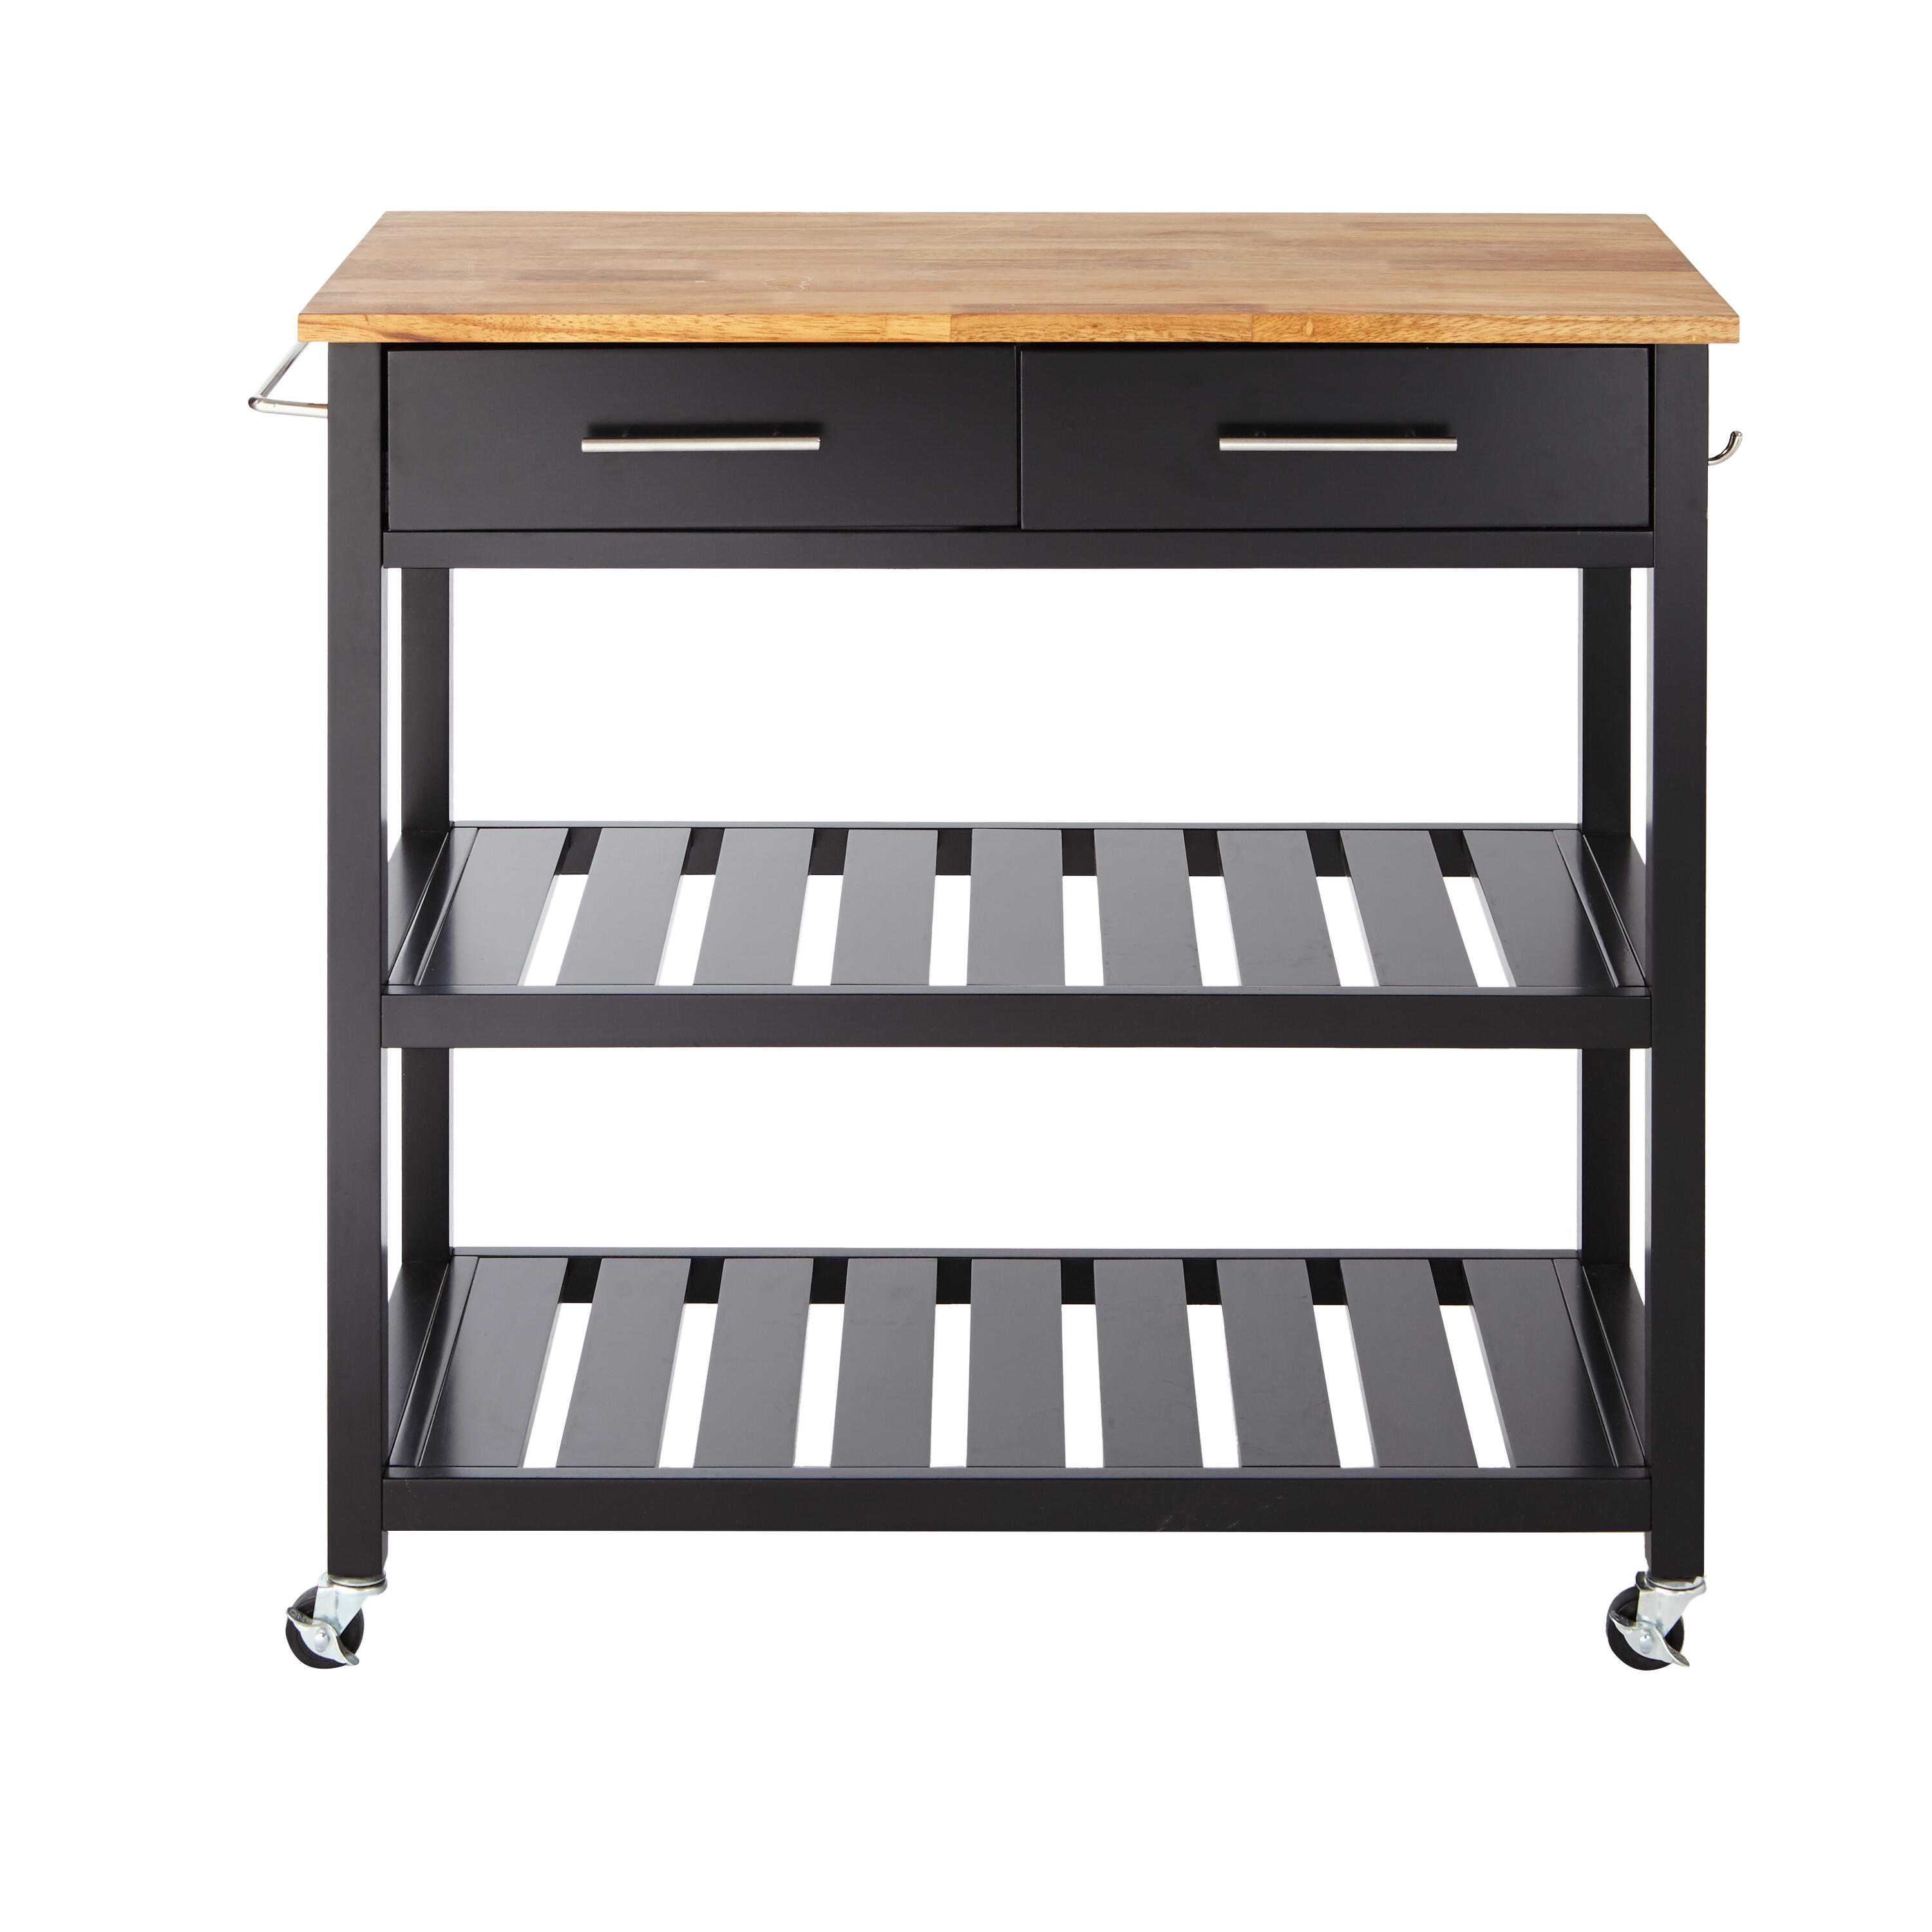 StyleWell Glenville Black Kitchen Cart with 2 Shelves